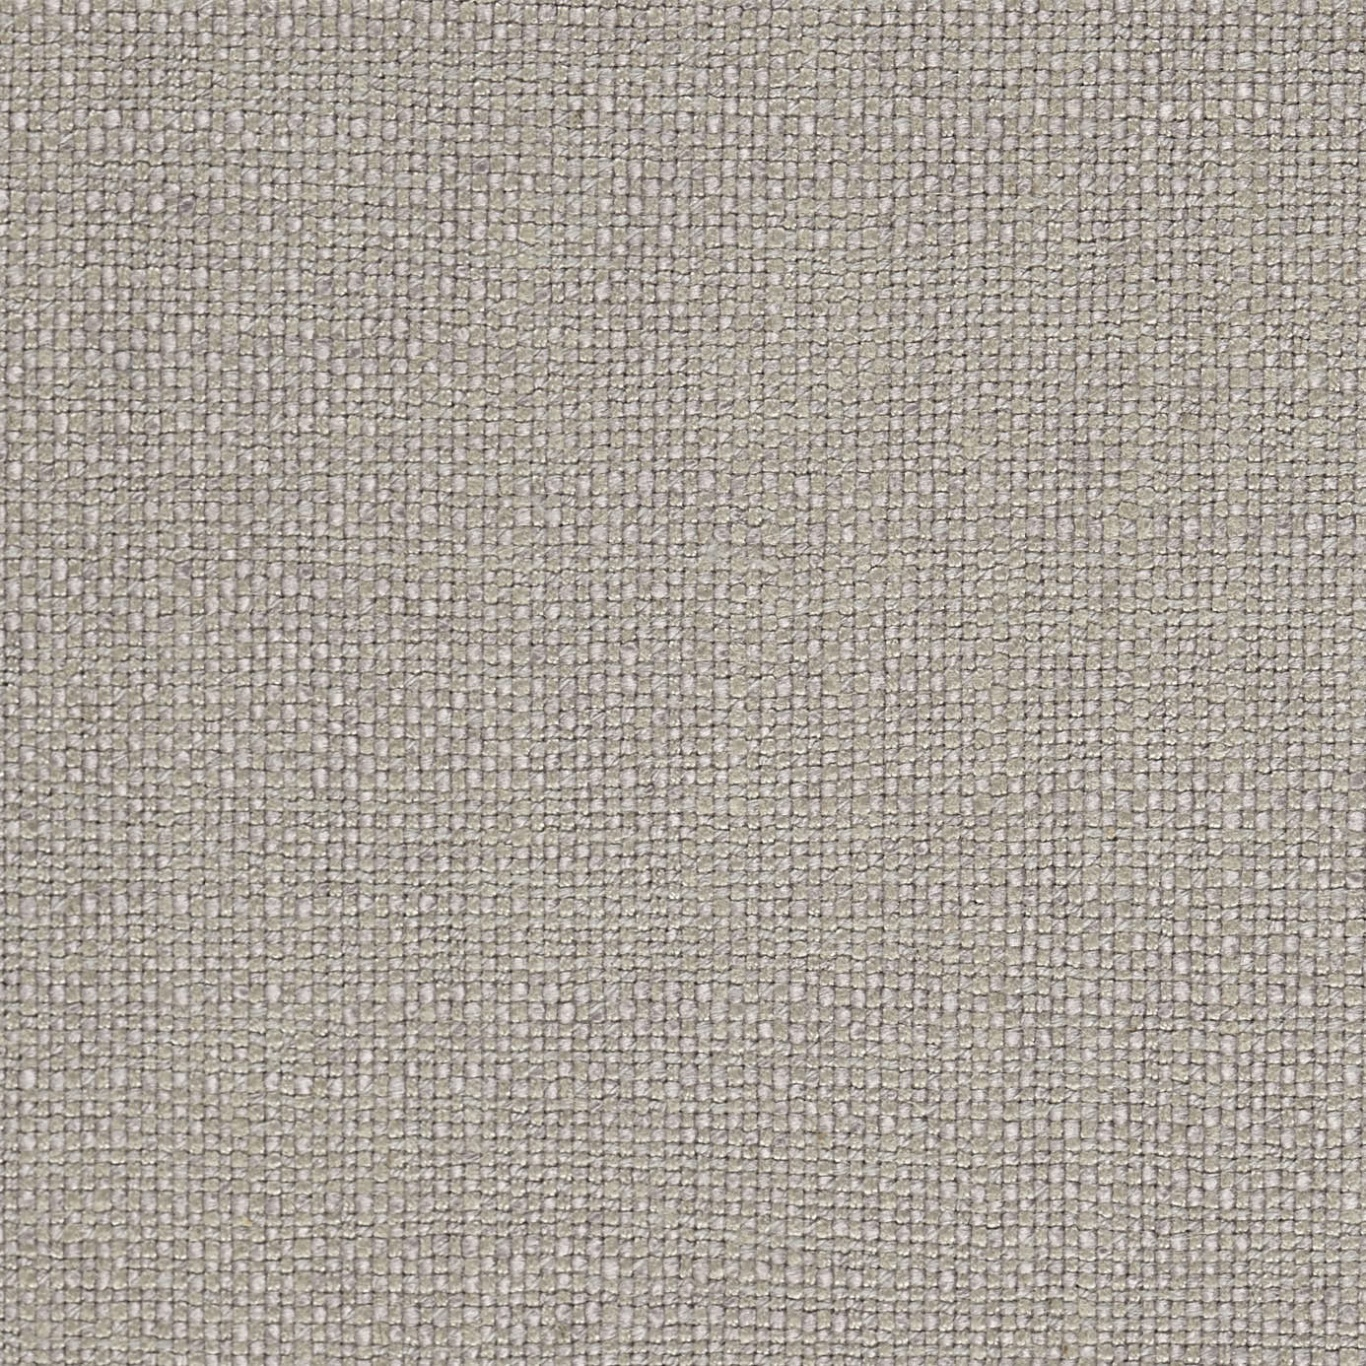 Image of Harlequin Fission Etherea Fabric 440127